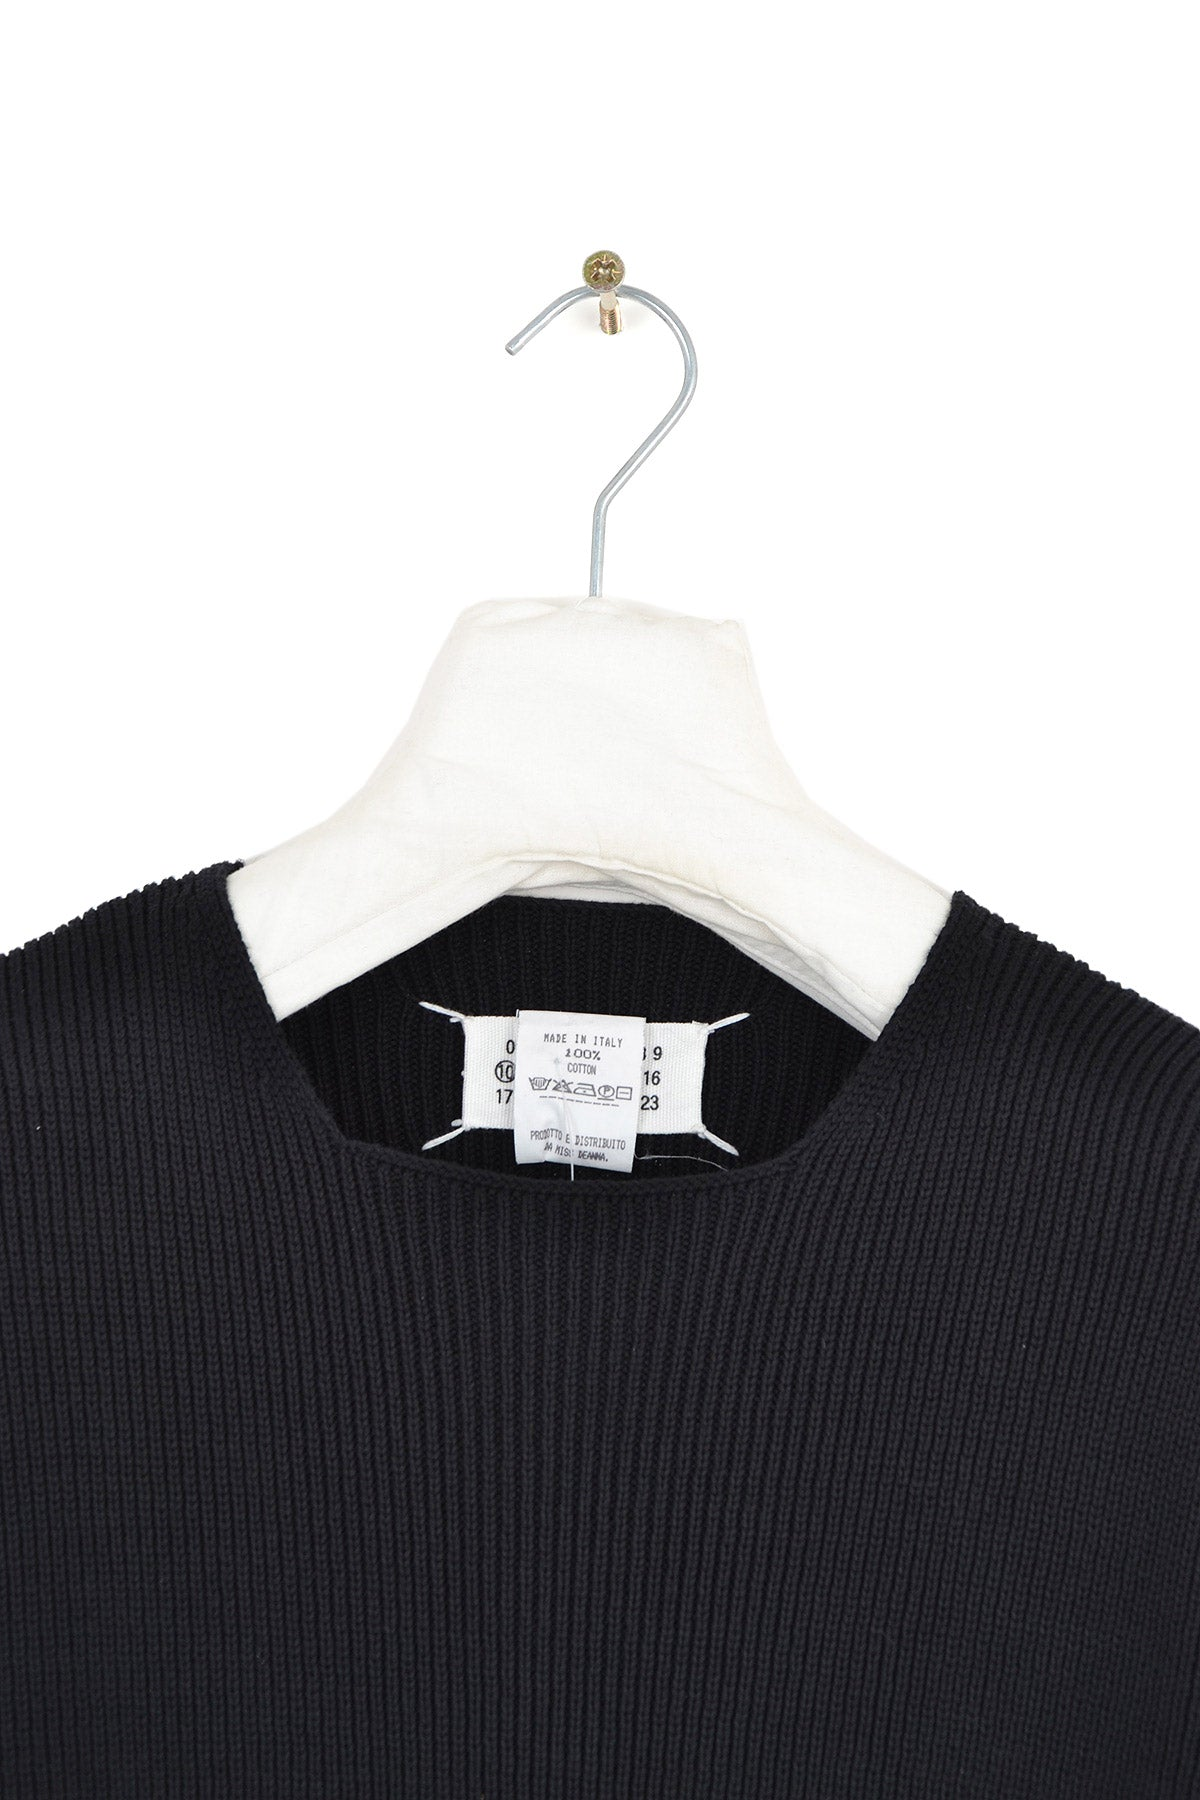 2000 A/W THICK RIBBED SWEATER WITH NECK DETAIL BY MISS DEANNA